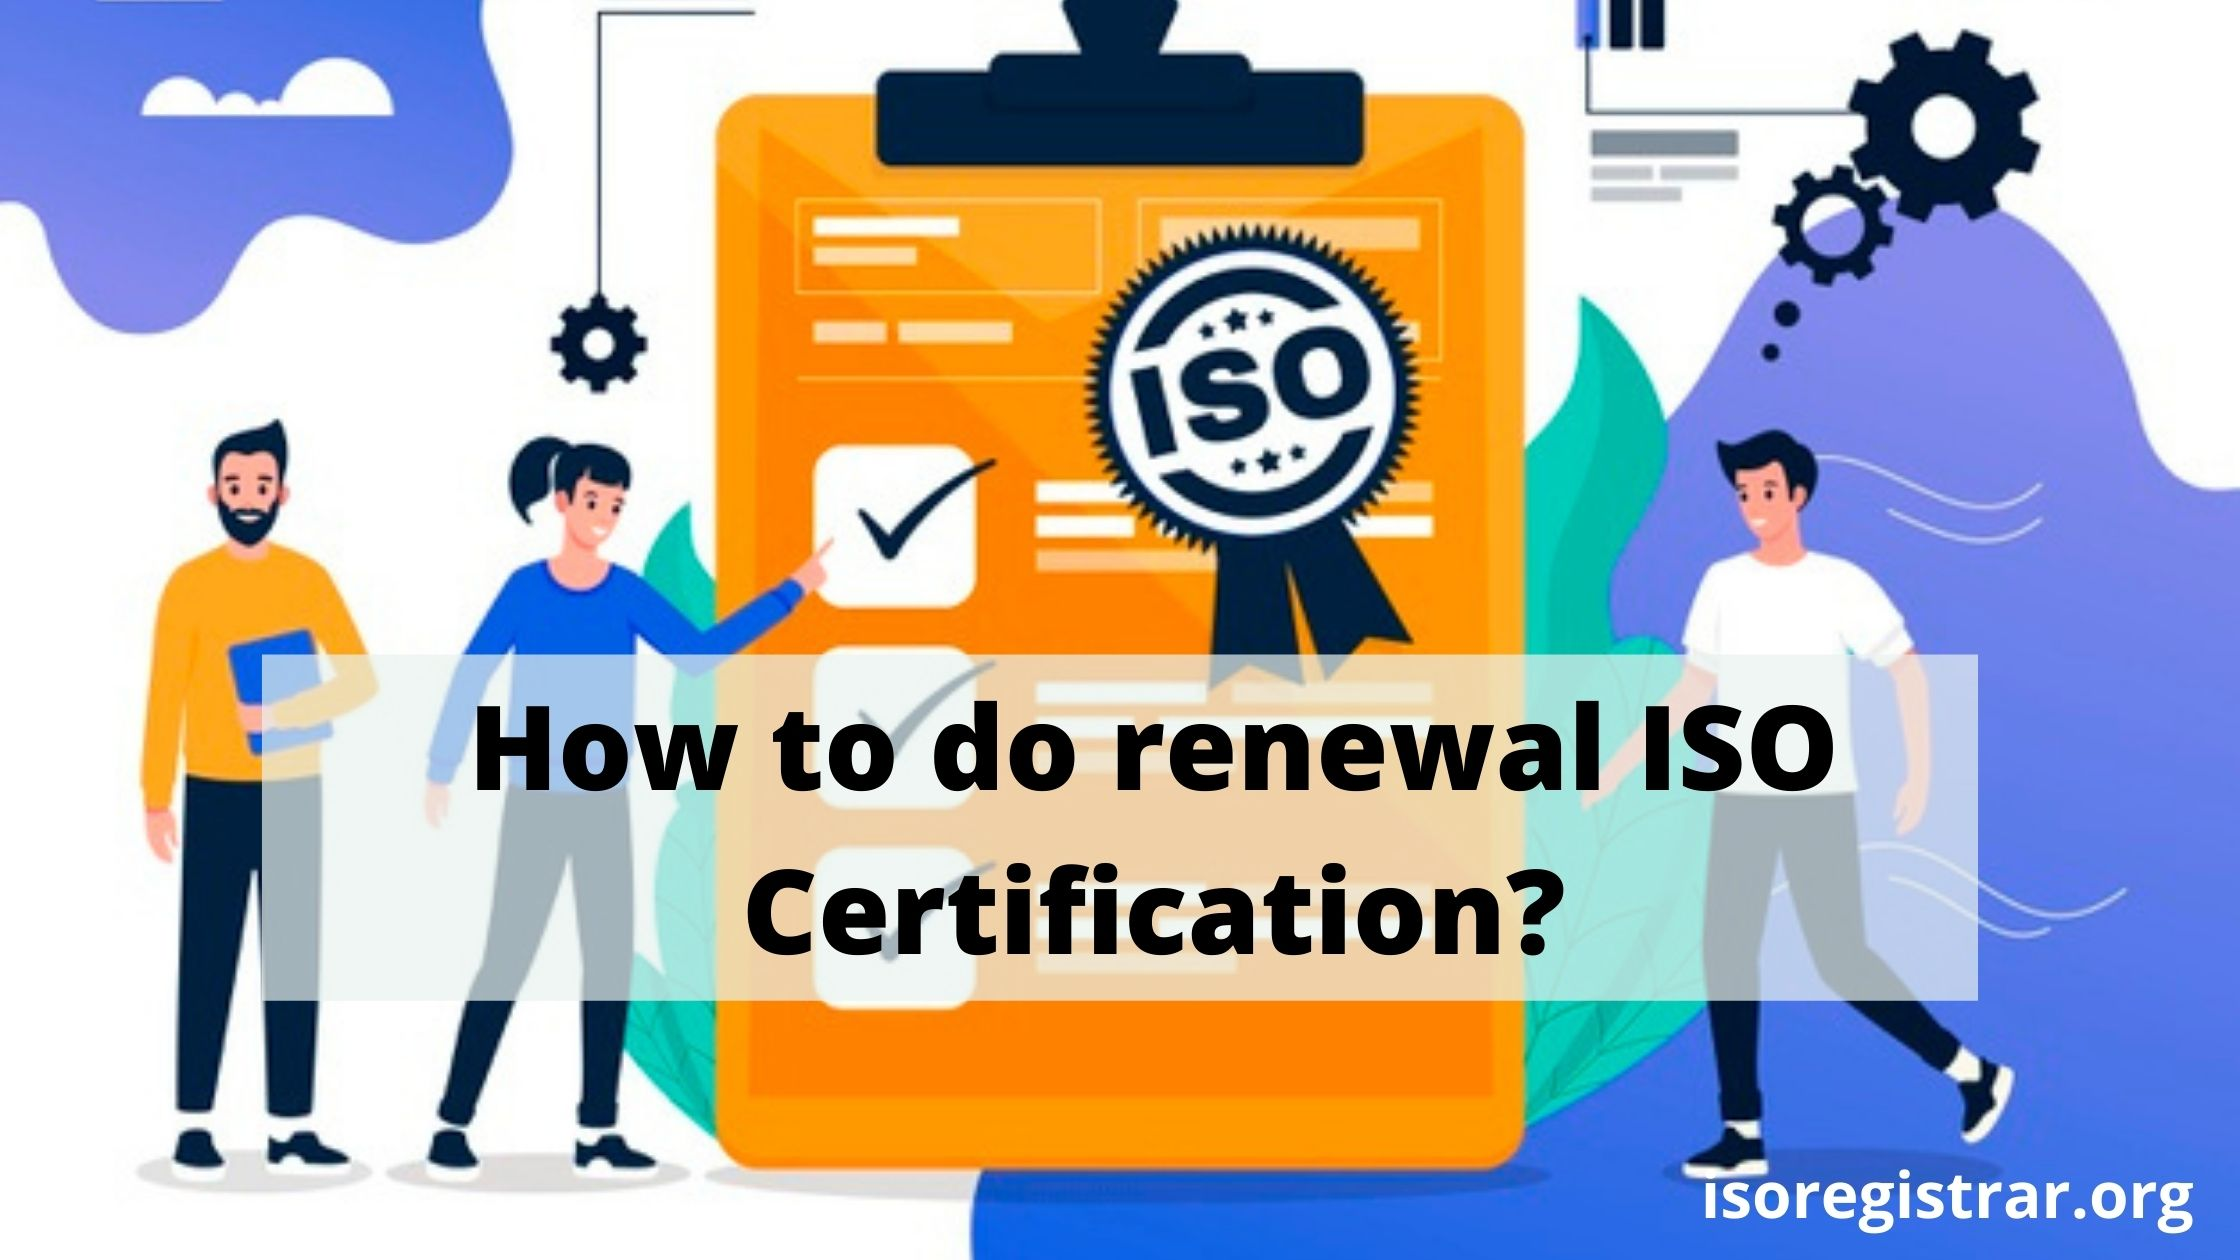 How to do Renewal of ISO Certification Online in India?